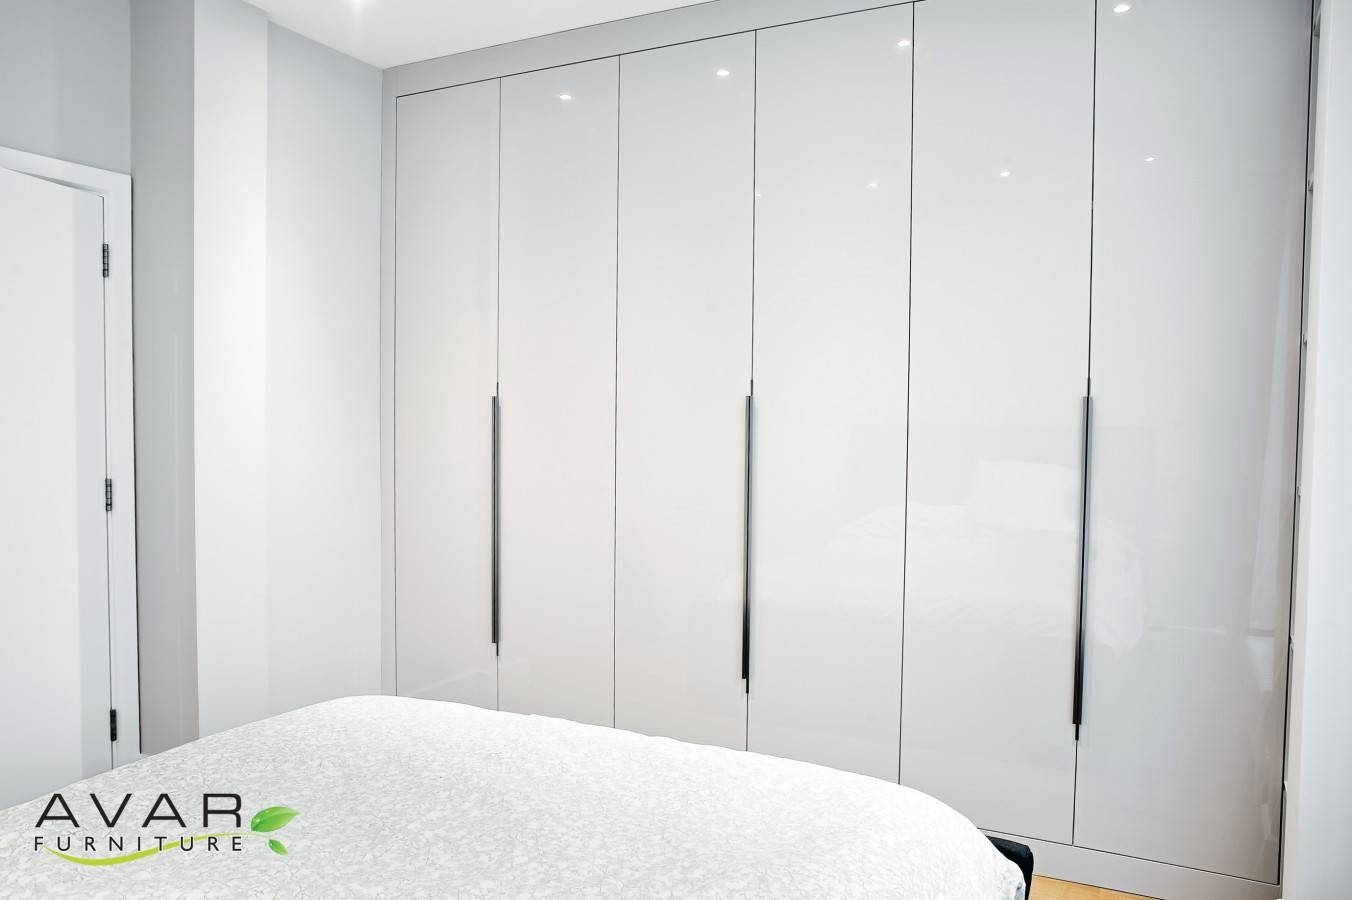 Ƹӝʒ Fitted Wardrobe Ideas Gallery 19 | North London, Uk | Avar with White High Gloss Wardrobes (Image 15 of 15)